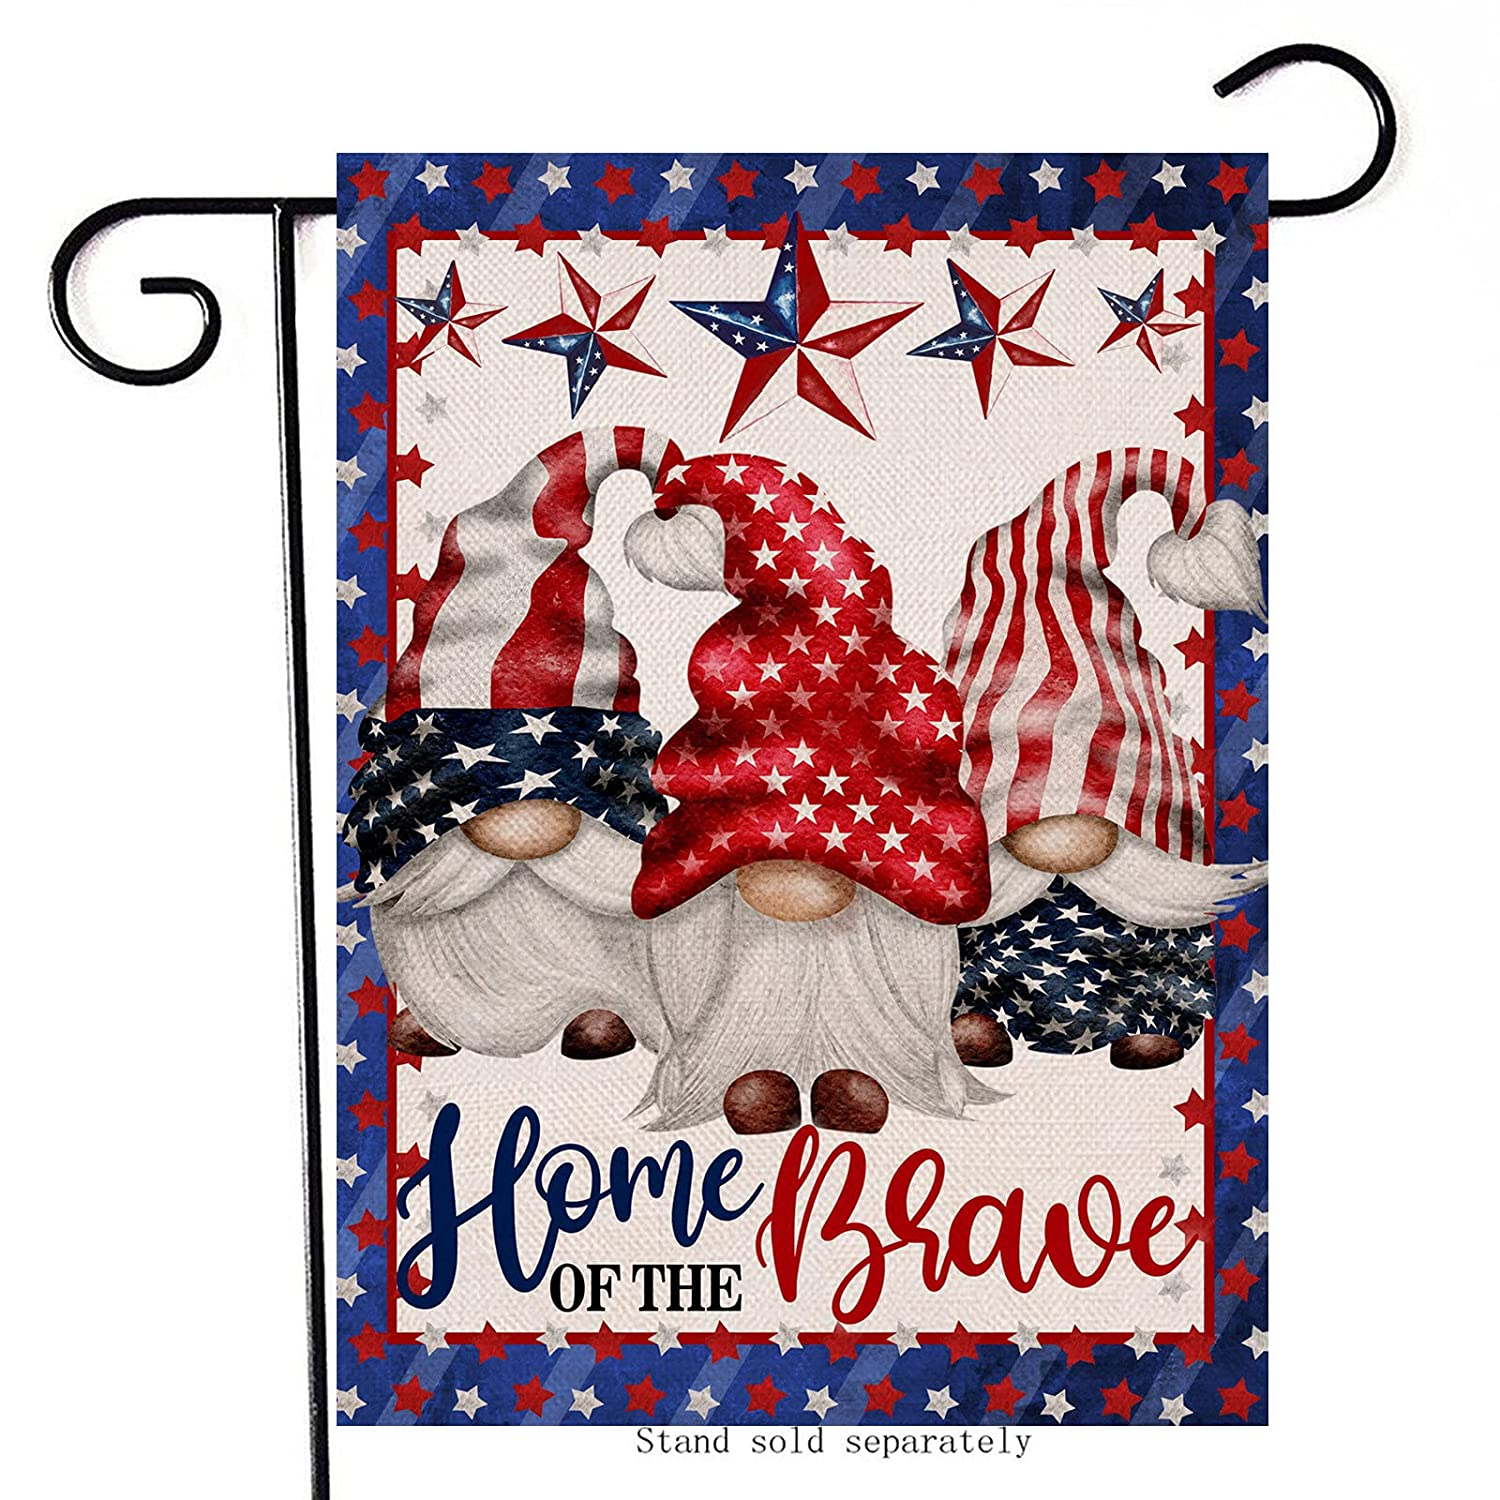 Artofy Home of the Brave Gnome Decorative Garden Flag, House Yard American July 4th Decor Sign Stars Stripes Outdoor Small Burlap Flag Double Sided, Home Outside USA Patriotic Decorations 12 x 18